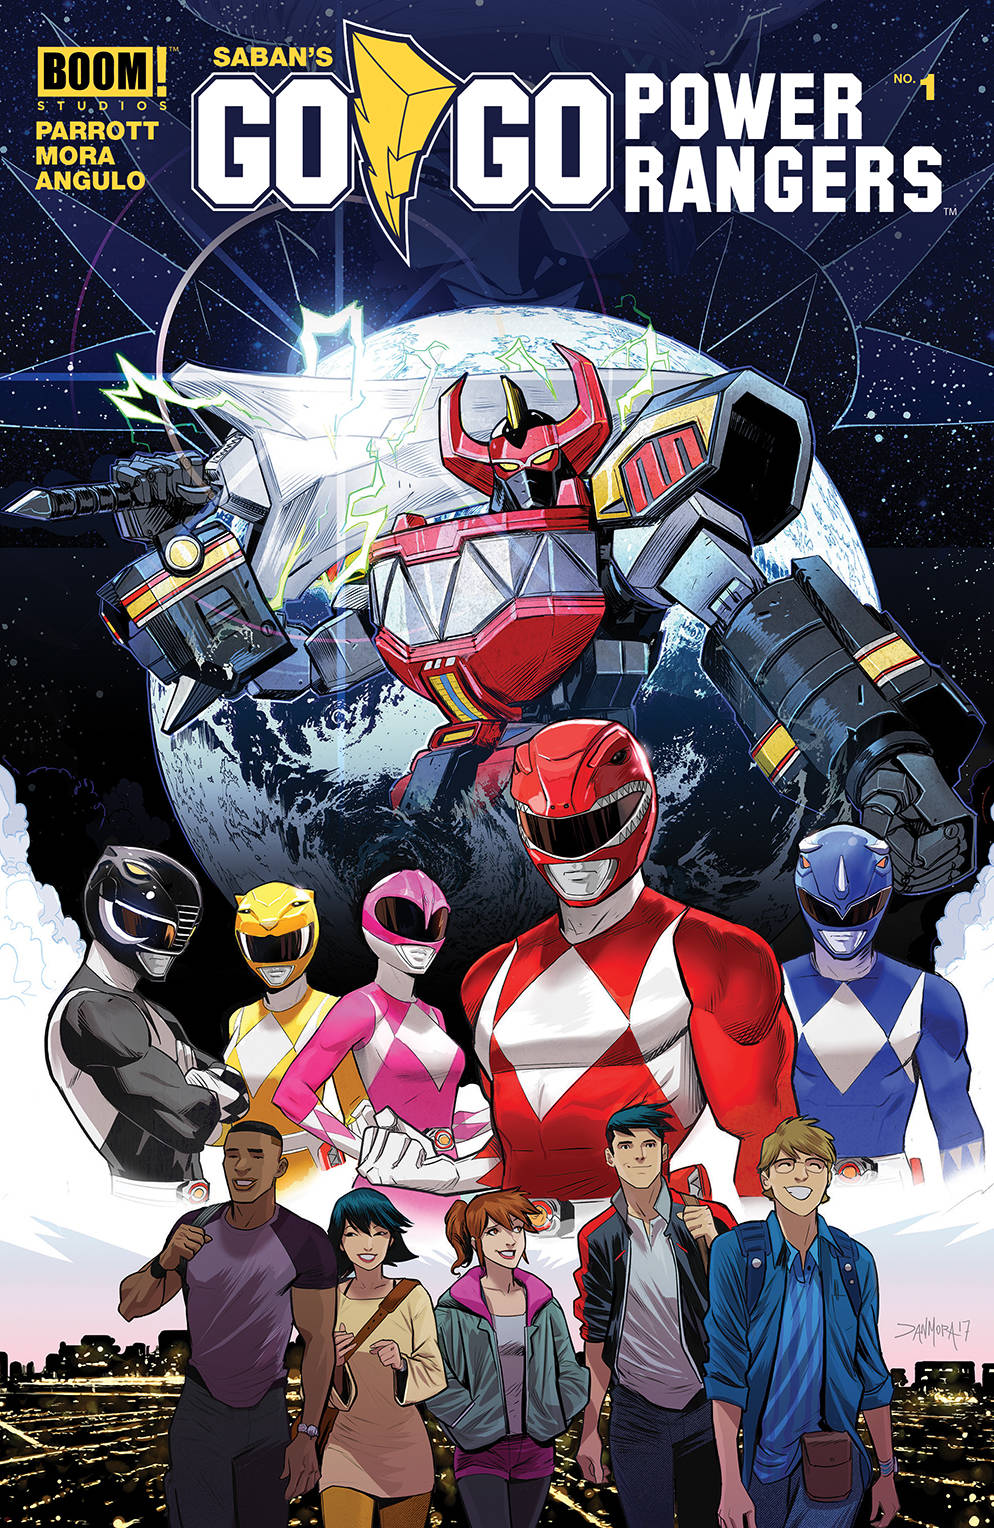 GO GO POWER RANGERS #1  - BOOM! STUDIOSWritten by Ryan Parrott Art by Dan Mora The untold, personal story of what happens to Jason, Kim, Trini, Zack, and Billy following in the days after they first became Power Rangers.Fighting evil is hard, but surviving high school may be even harder-welcome to real life in Angel Grove.